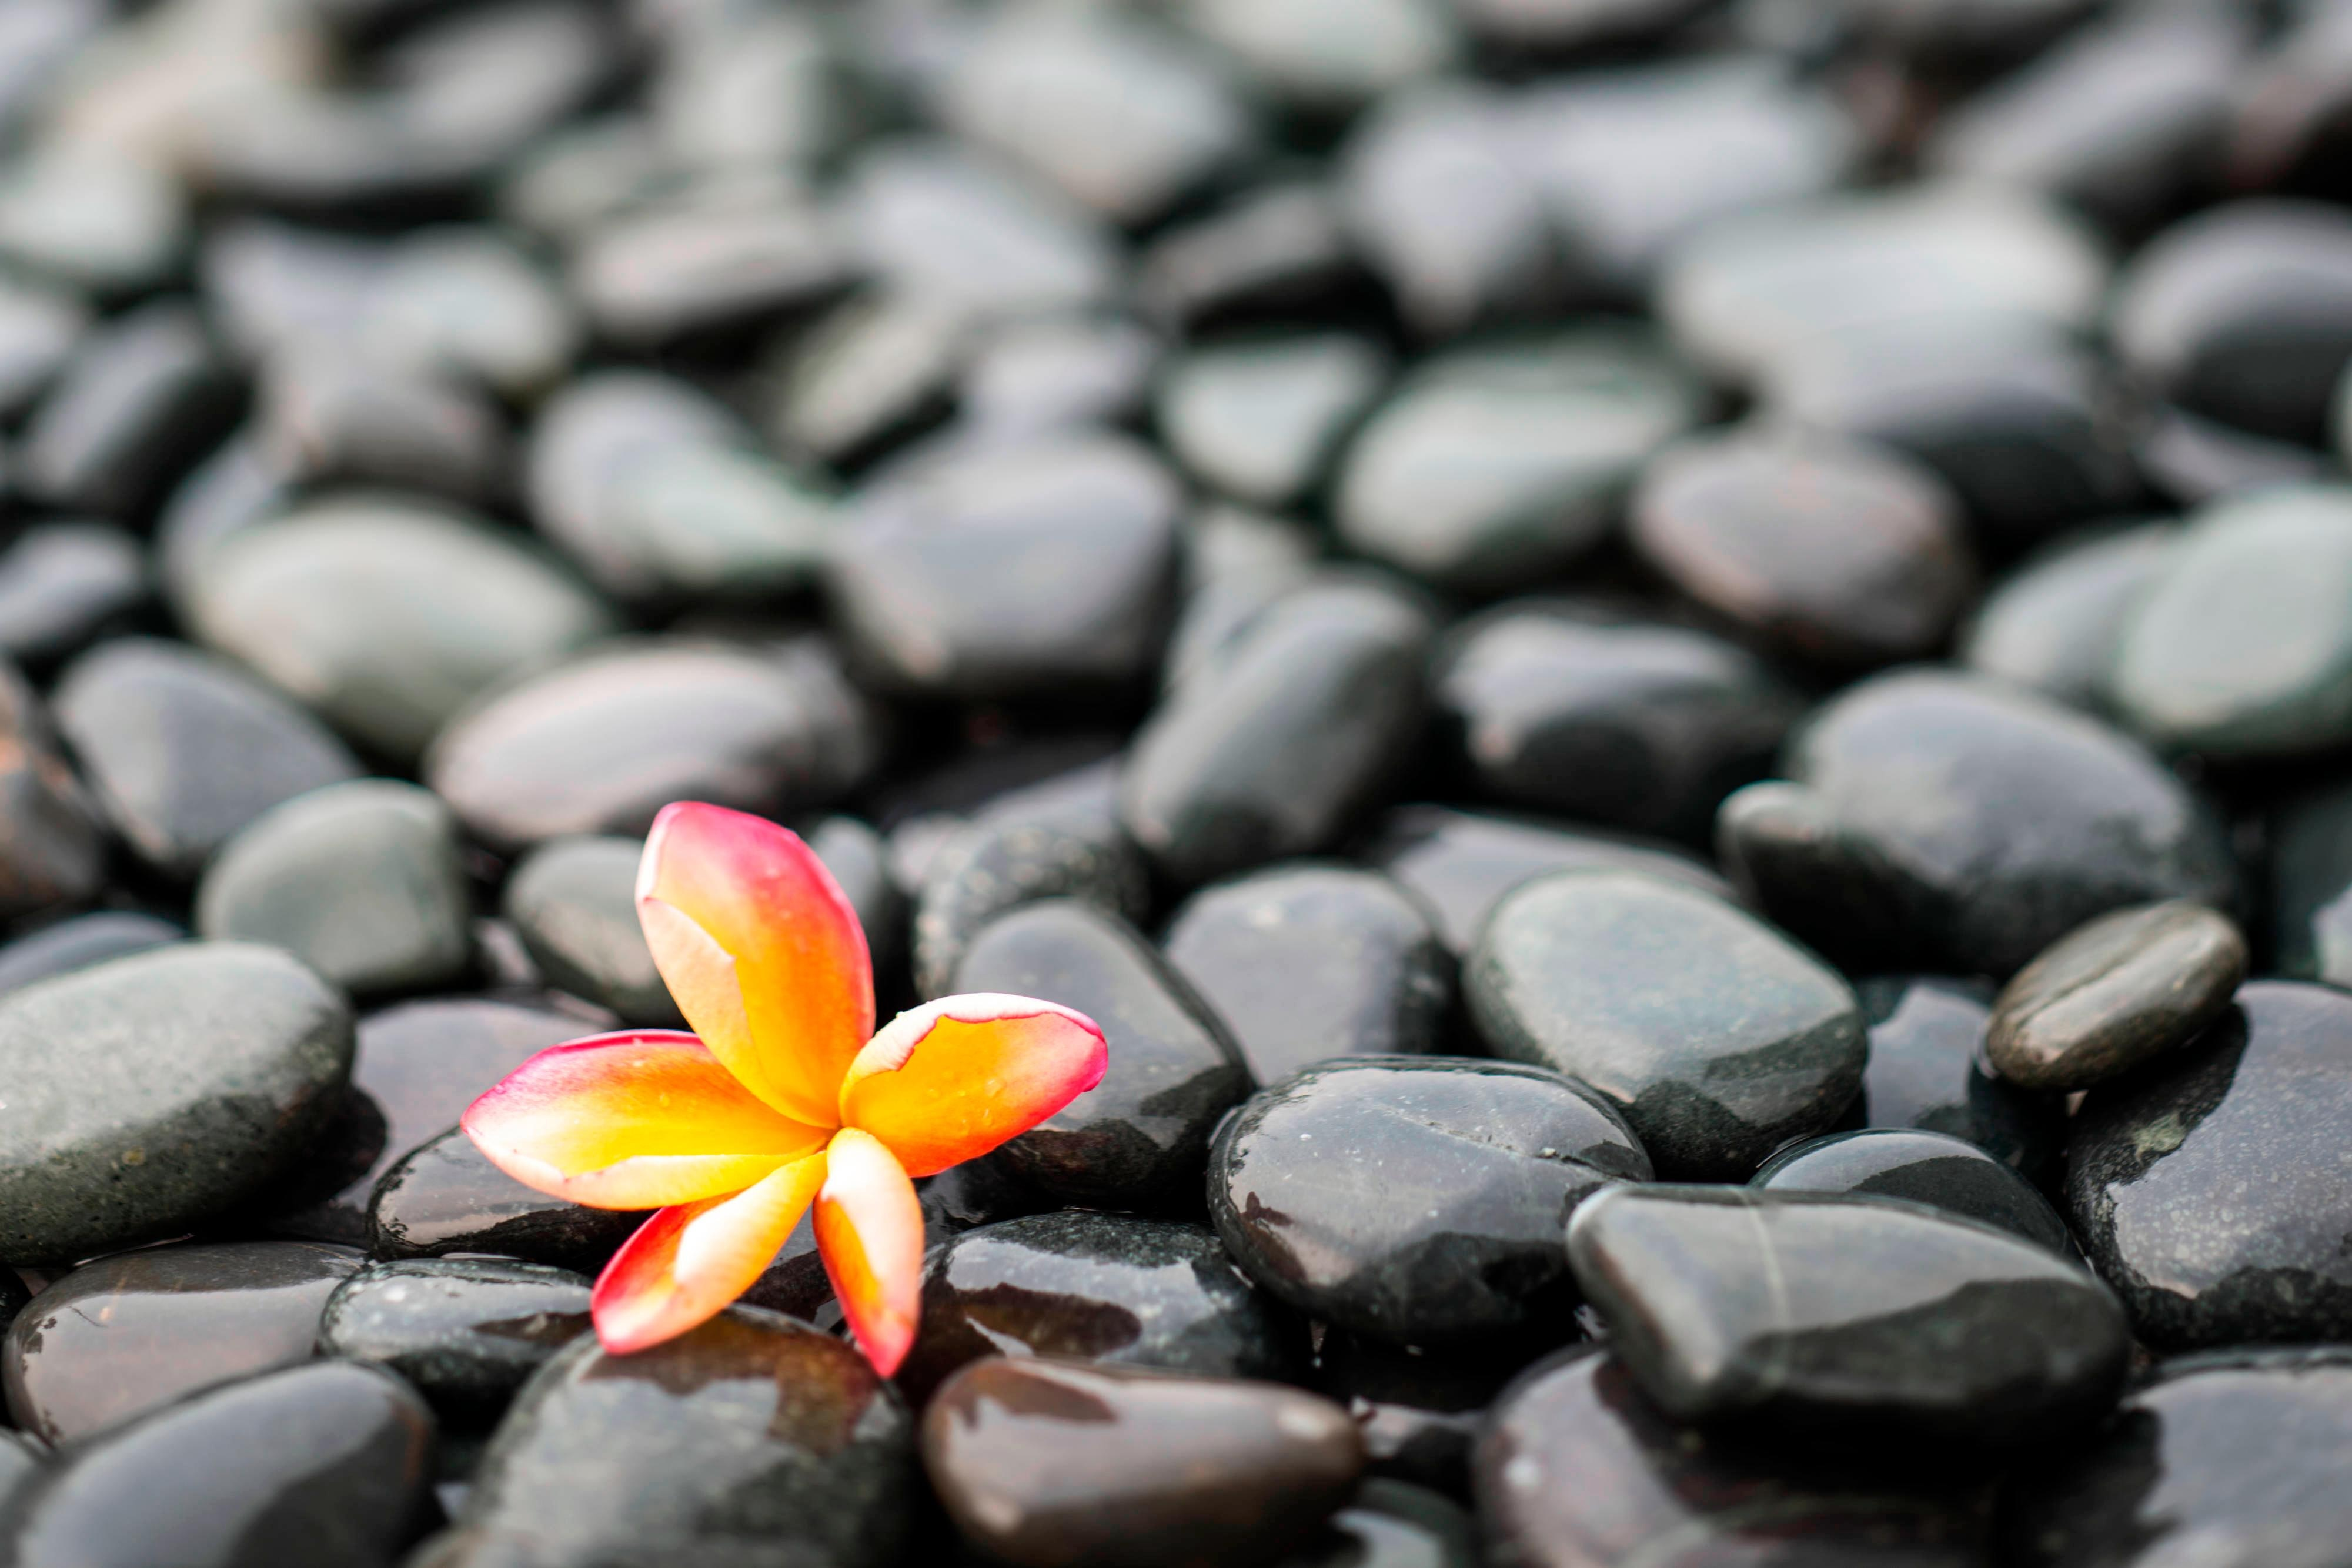 A sprig of orchid on rocks